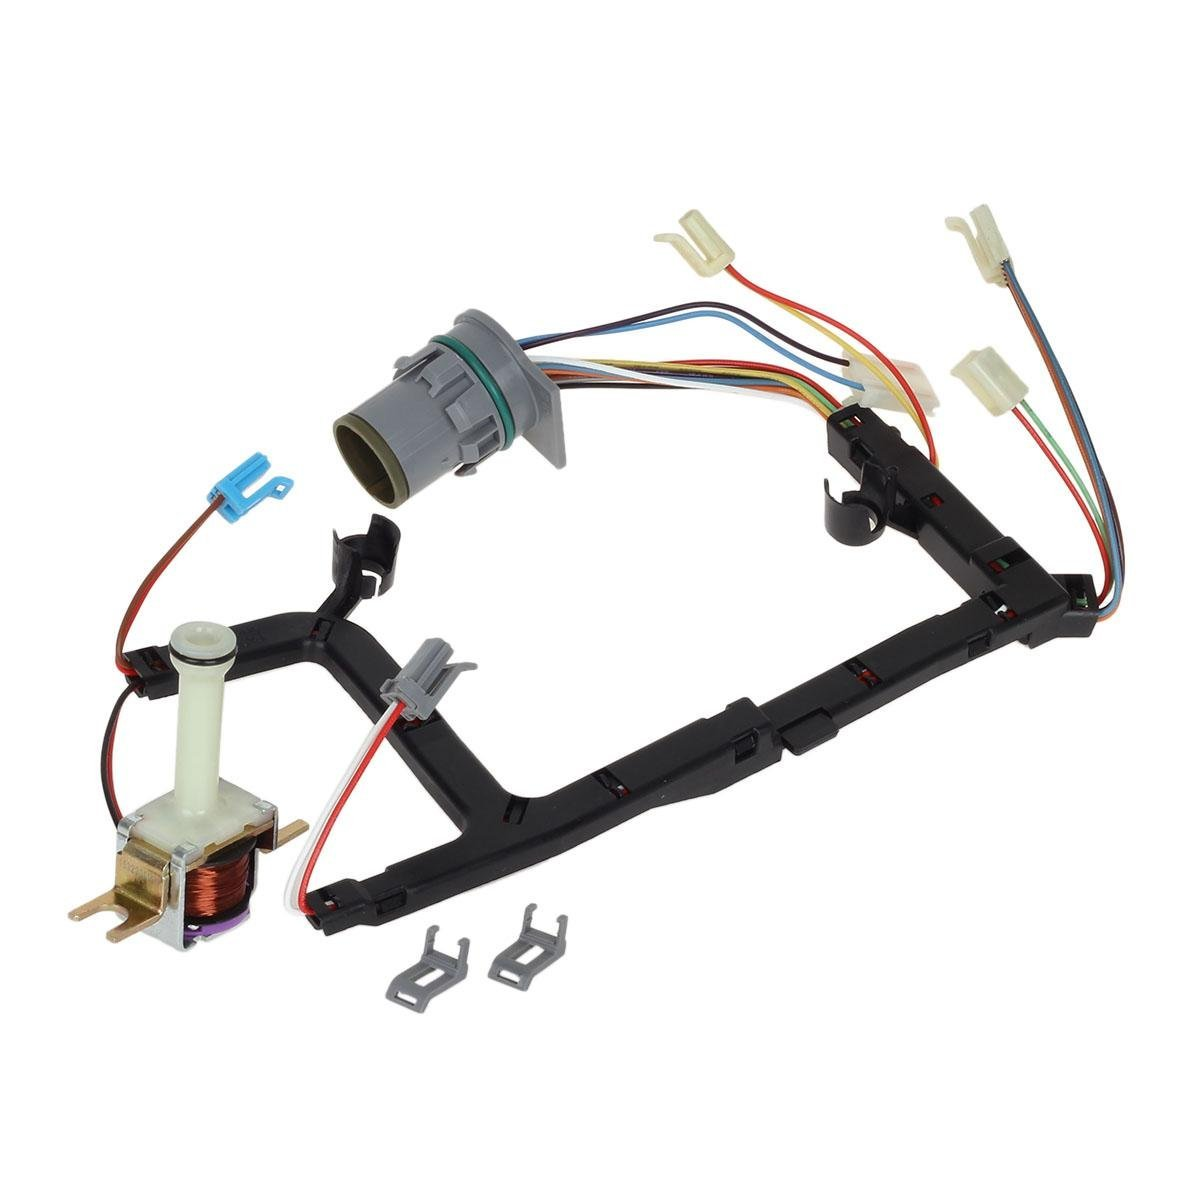 small resolution of universal 4l60e transmission solenoid internal wire harness with tcc for 1993 2002 gm